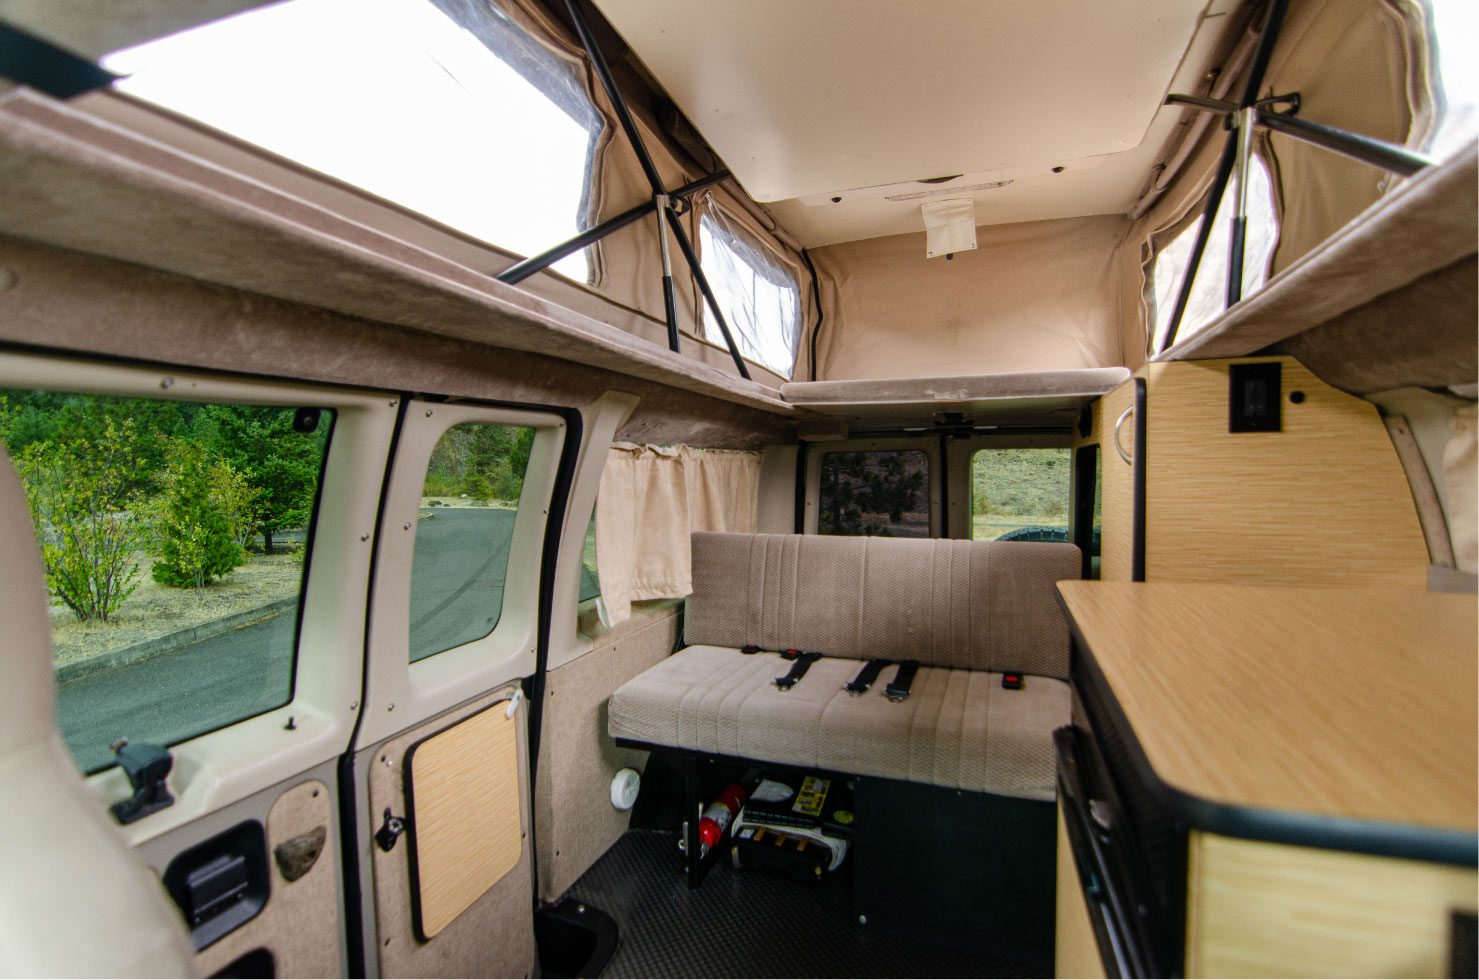 Inside view of a 4wd Sportsmobile penthouse with windows that open with screens Ford E-Series 4x4 Econoline Sportsmobile RB50 Layout Campervan conversion for sale built by Van Specialties